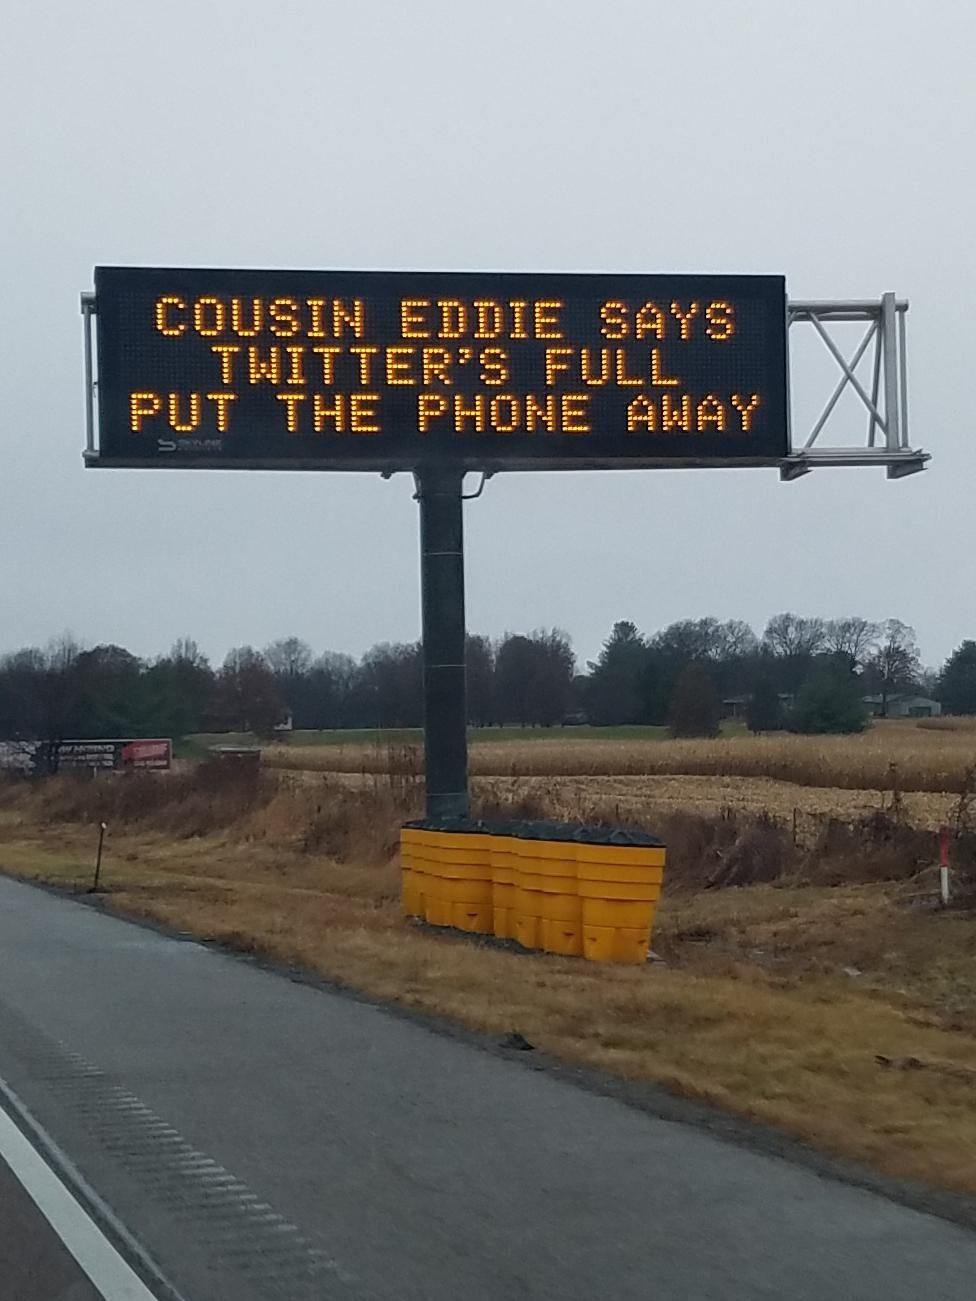 Careful out there, holiday travelers!